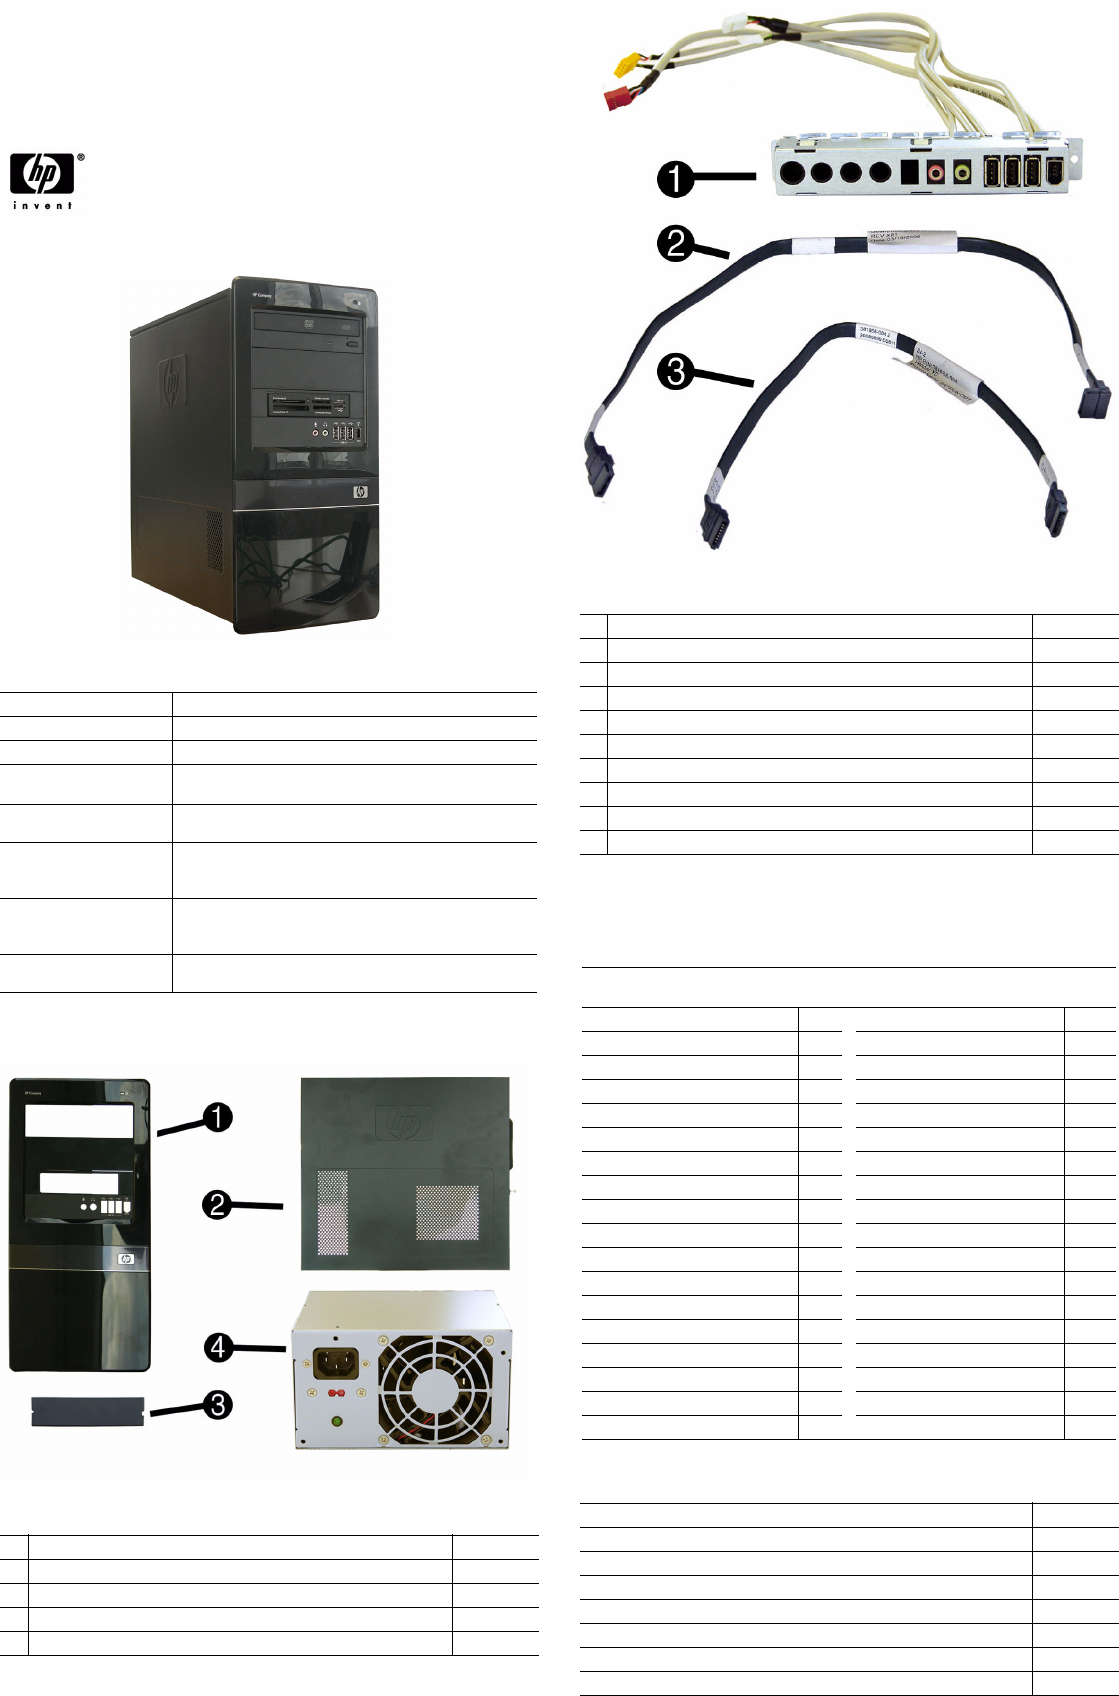 Illustrated Parts & Service HP Compaq dx7500 Business PC Microtower